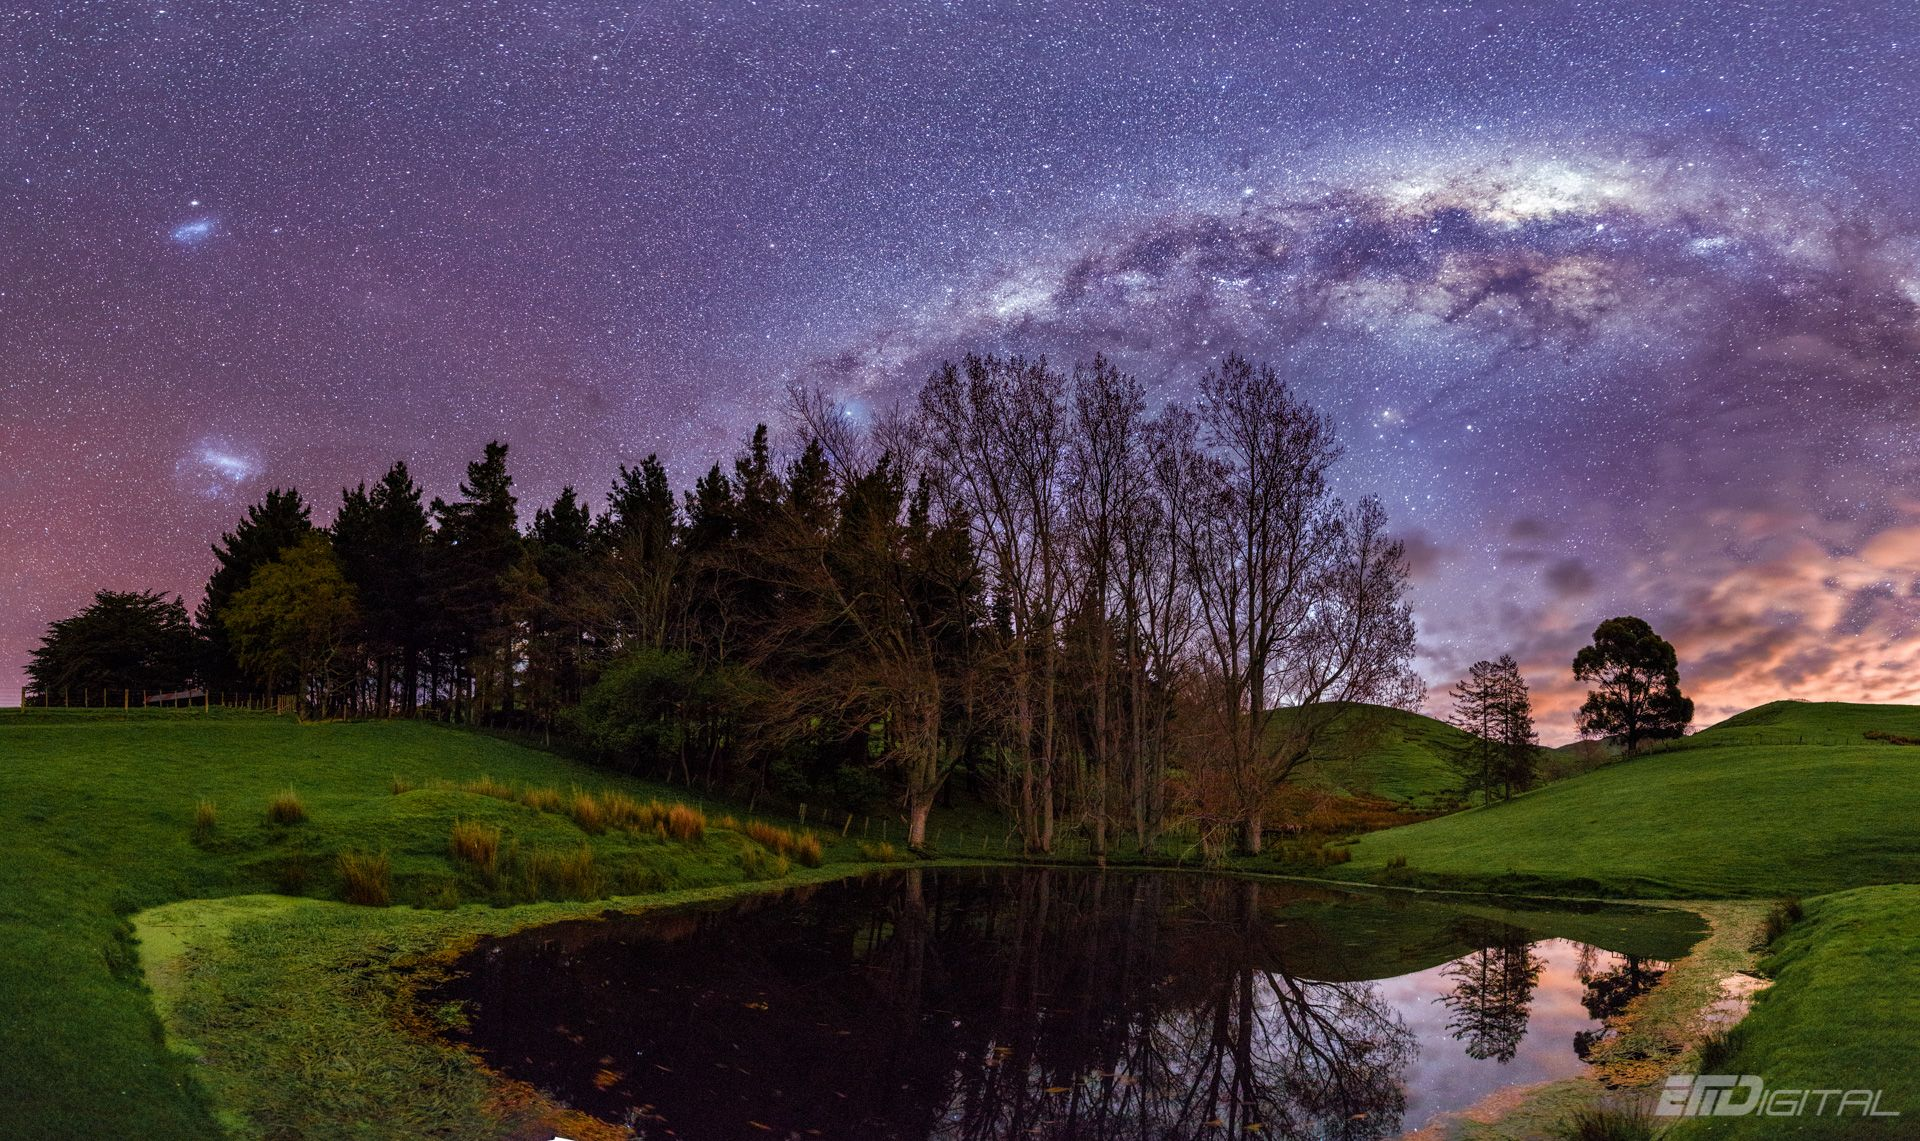 Pin by Clifford Huff on Astronomy Golf courses